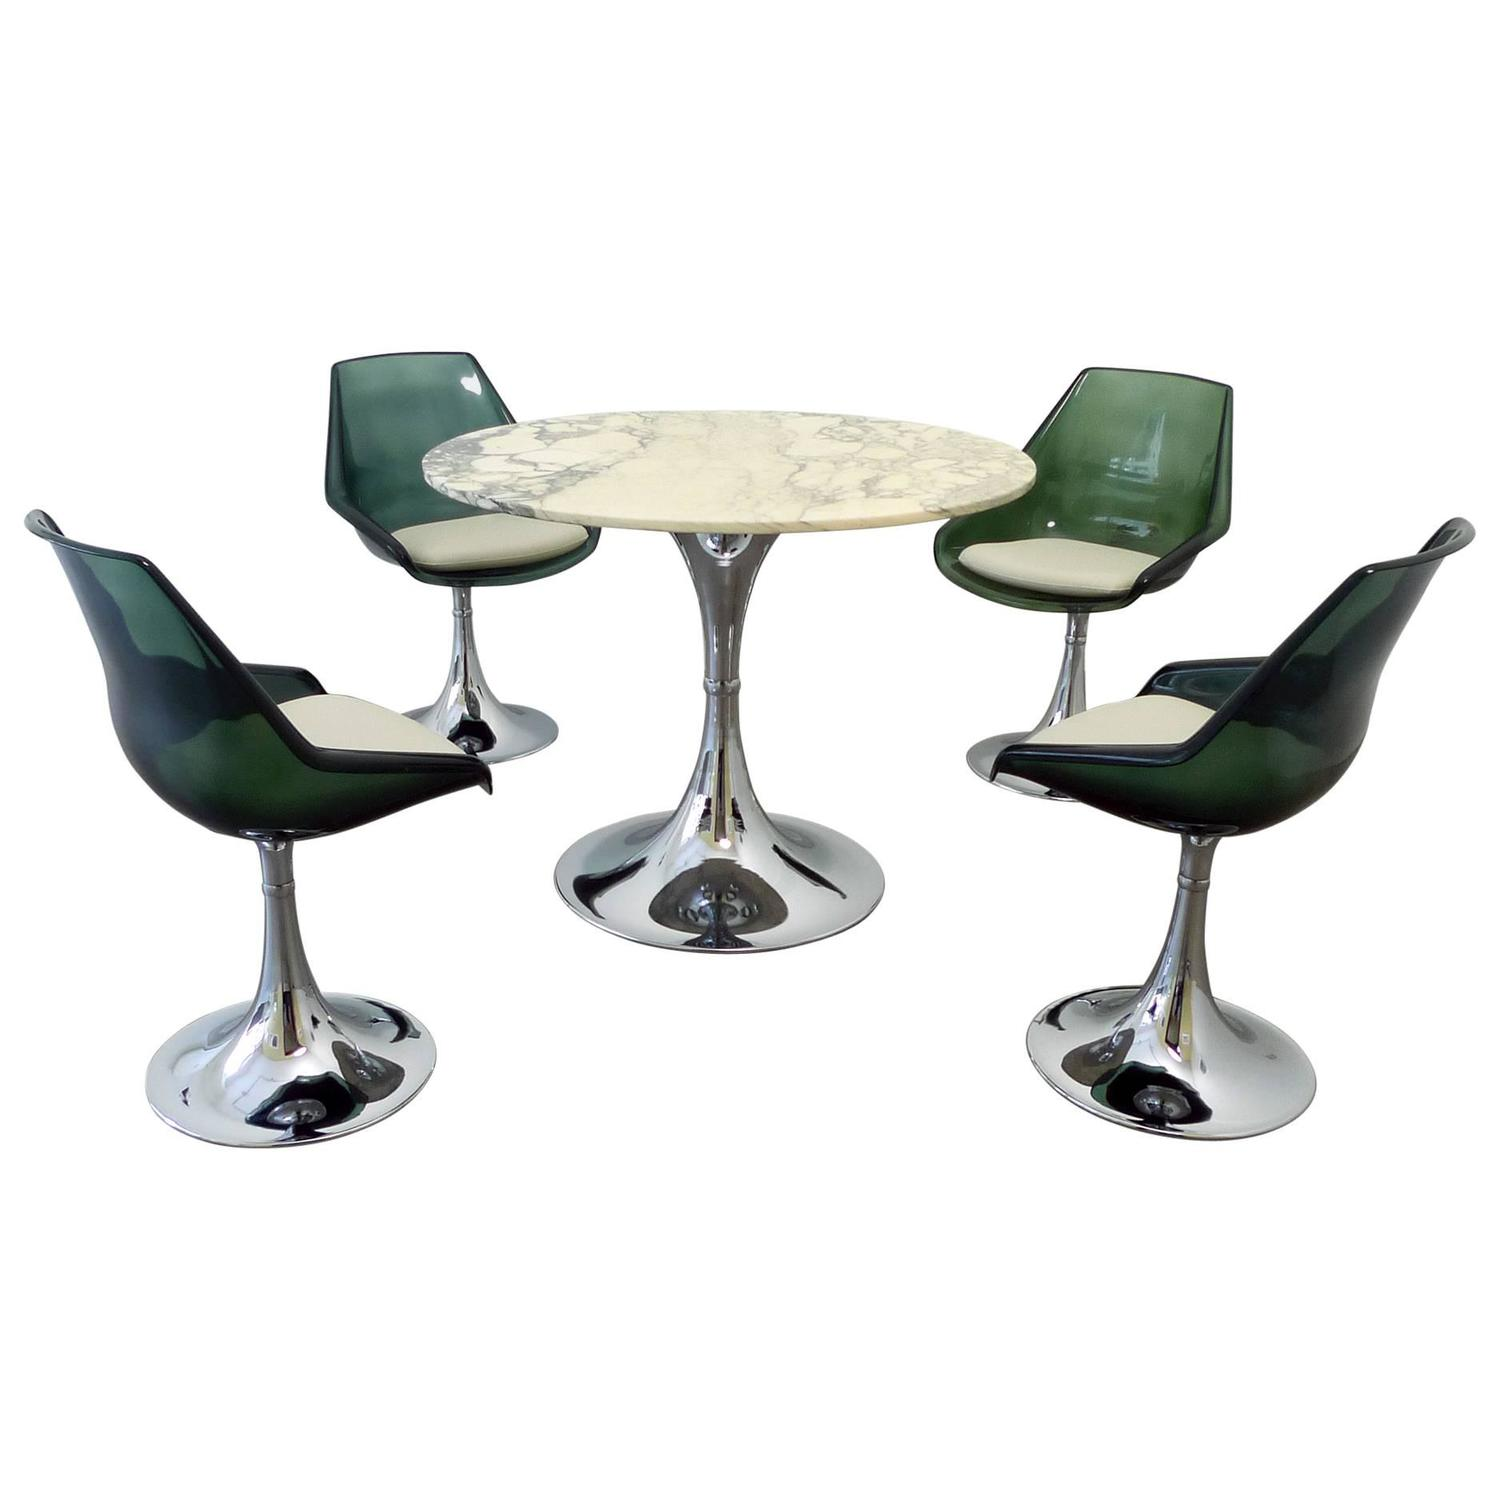 Chromed Tulip Dining Set with Green Marble Plate and Seat  : 5291493z from www.1stdibs.com size 1500 x 1500 jpeg 75kB